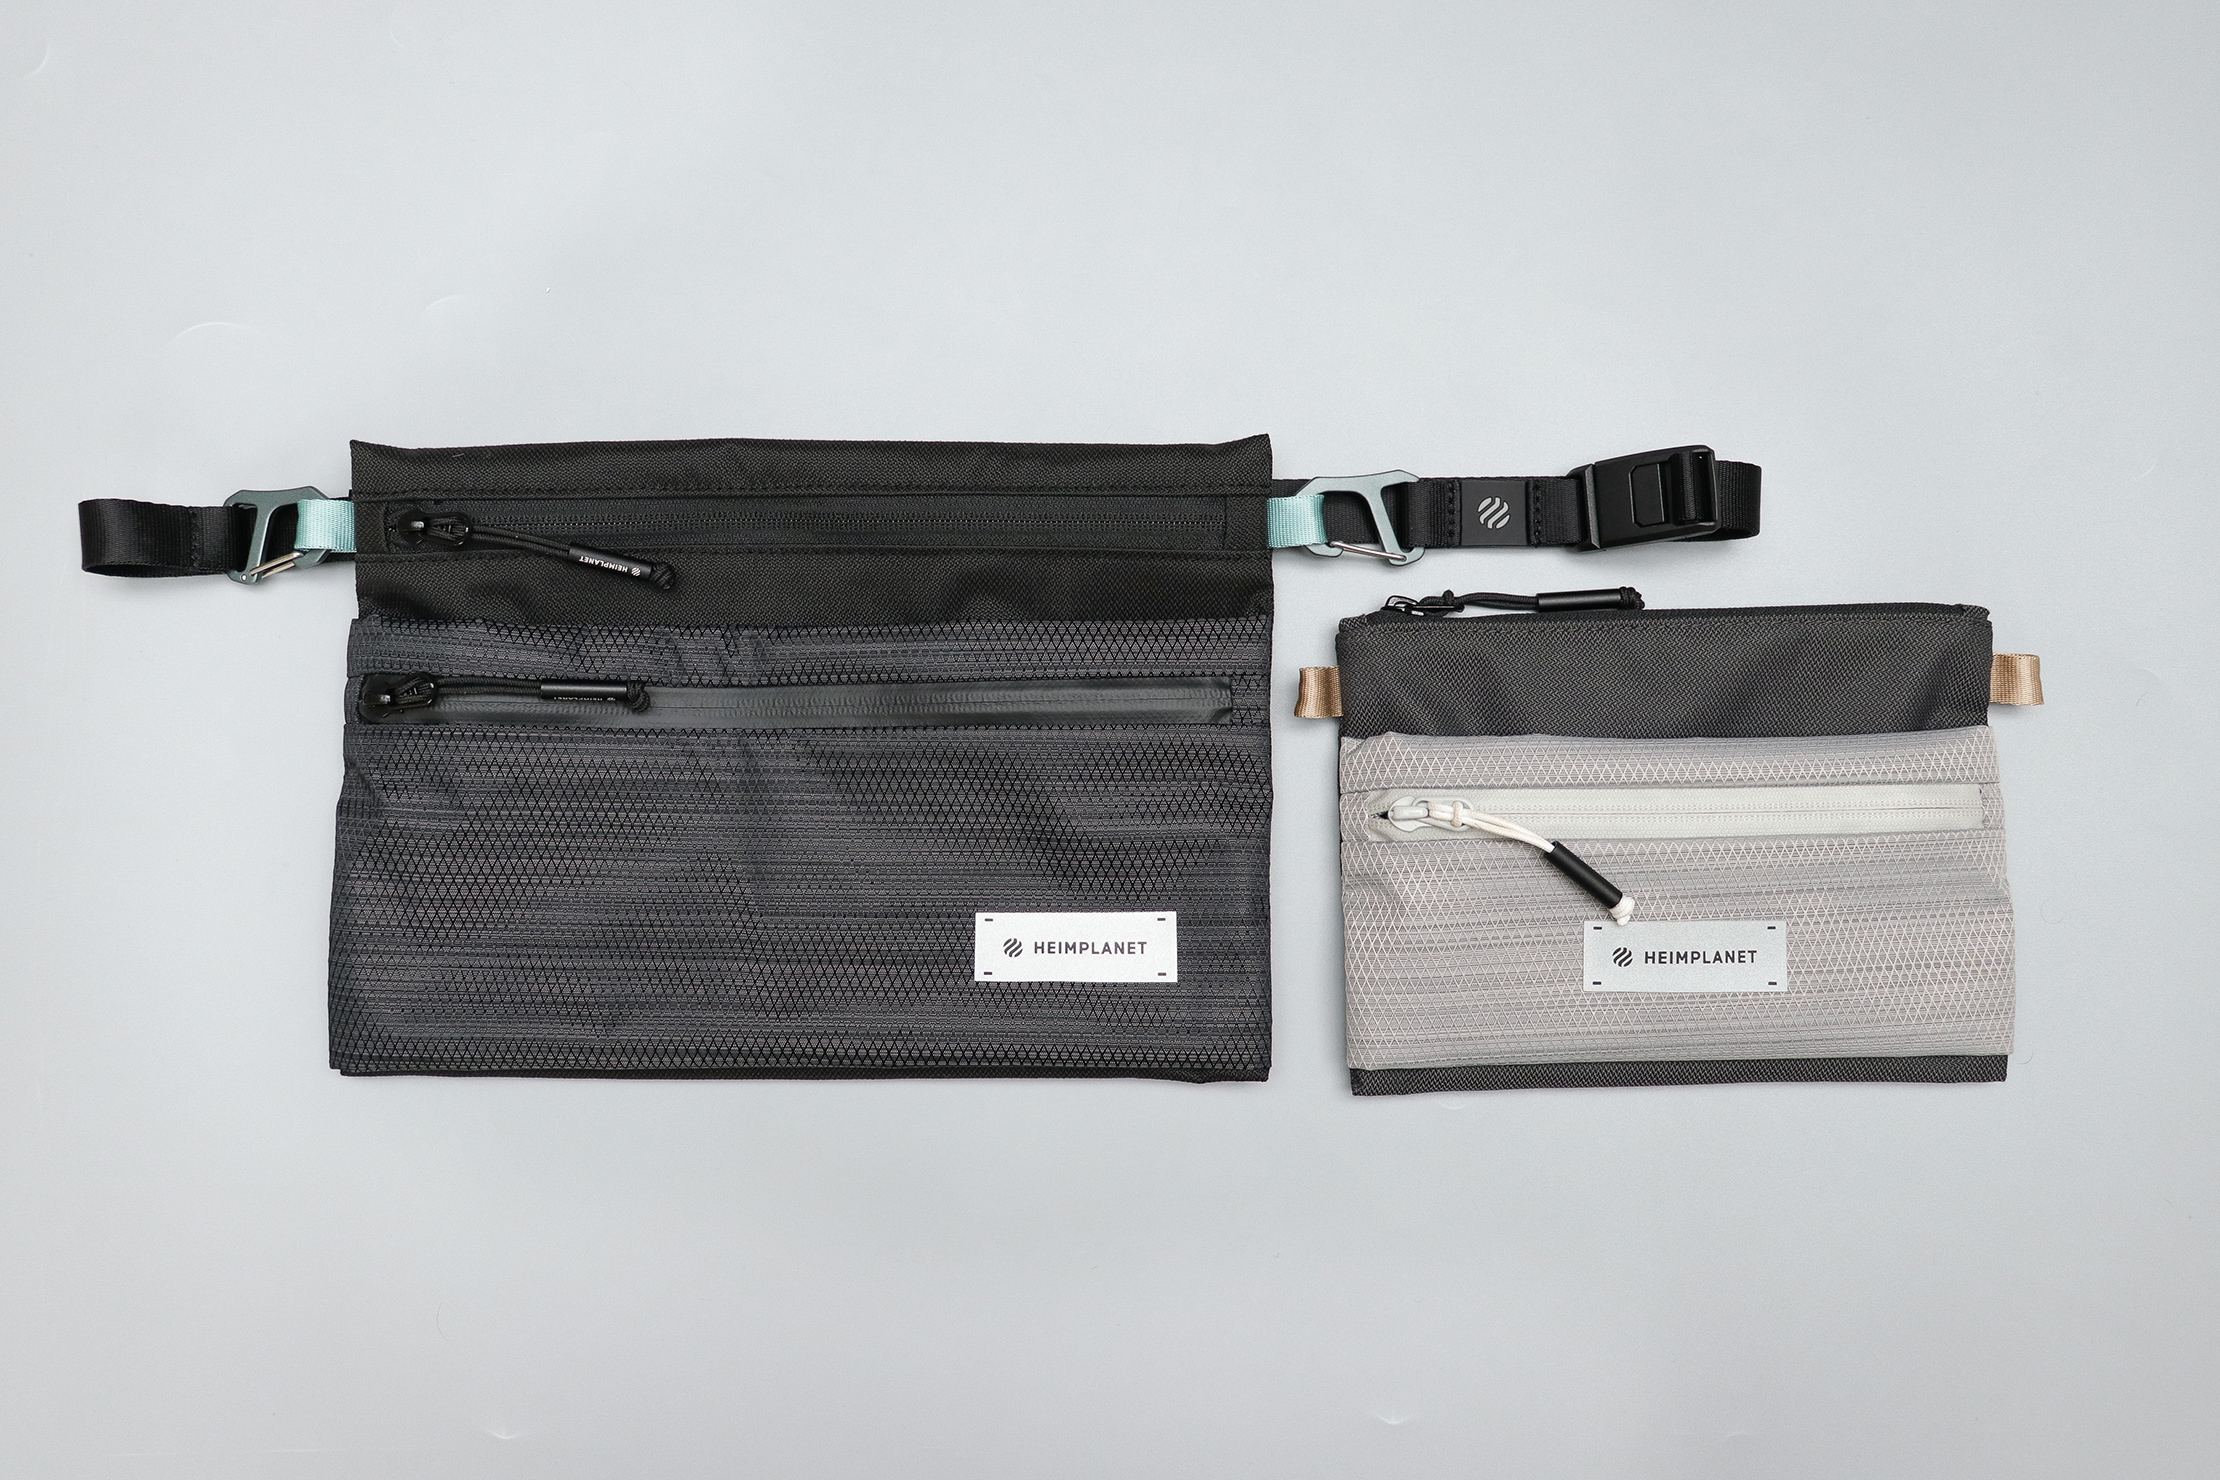 Heimplanet Neck Pouch A5 and A6